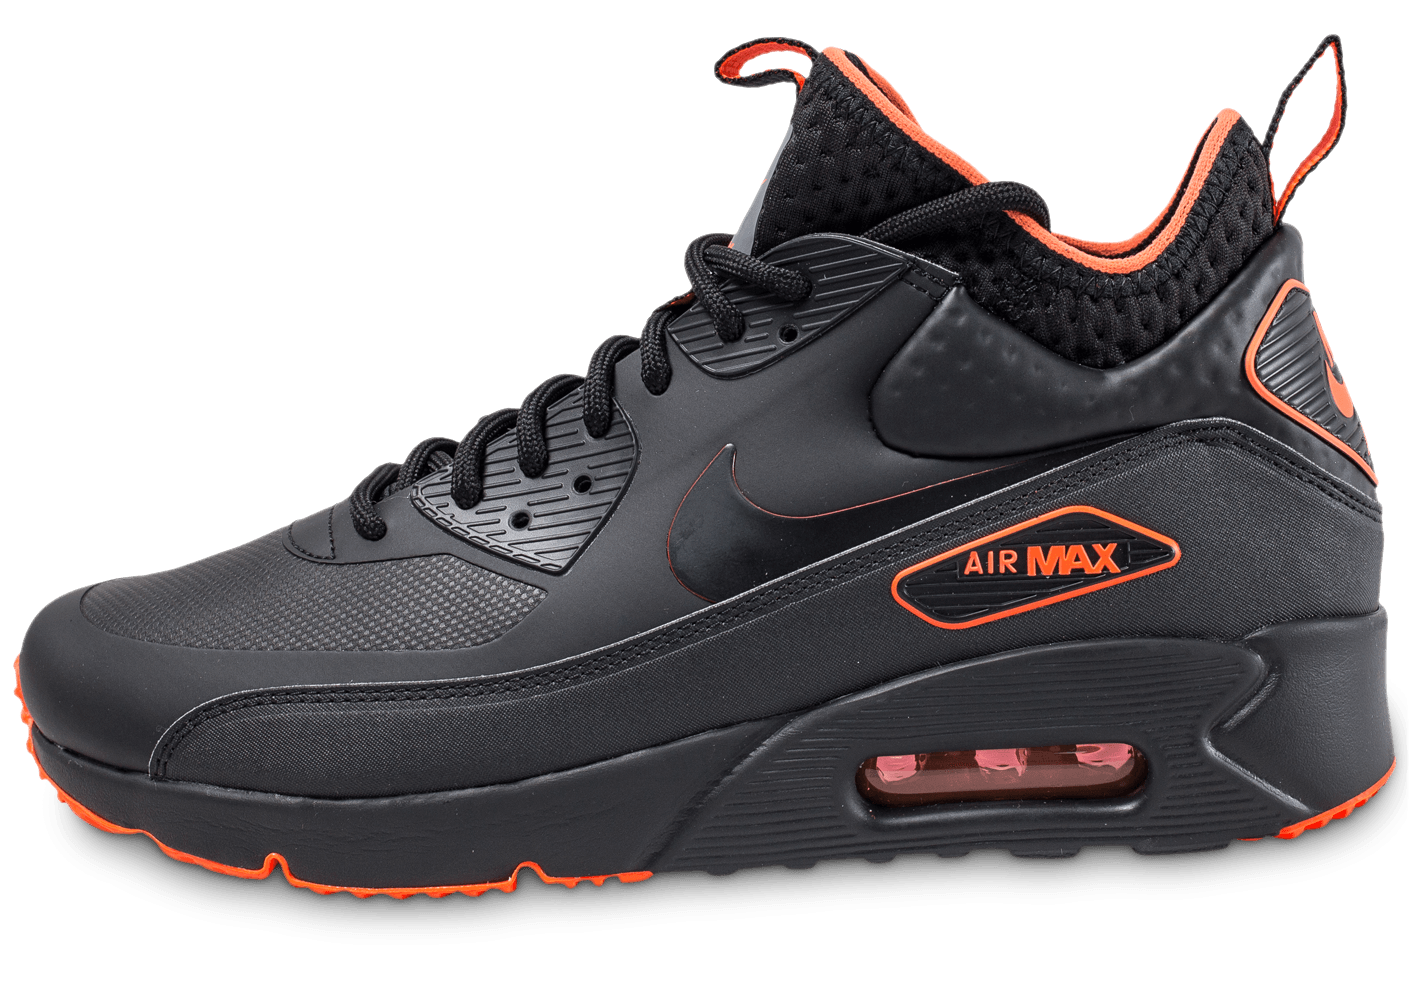 new style 9e01f 24365 basket nike air max 90 femme